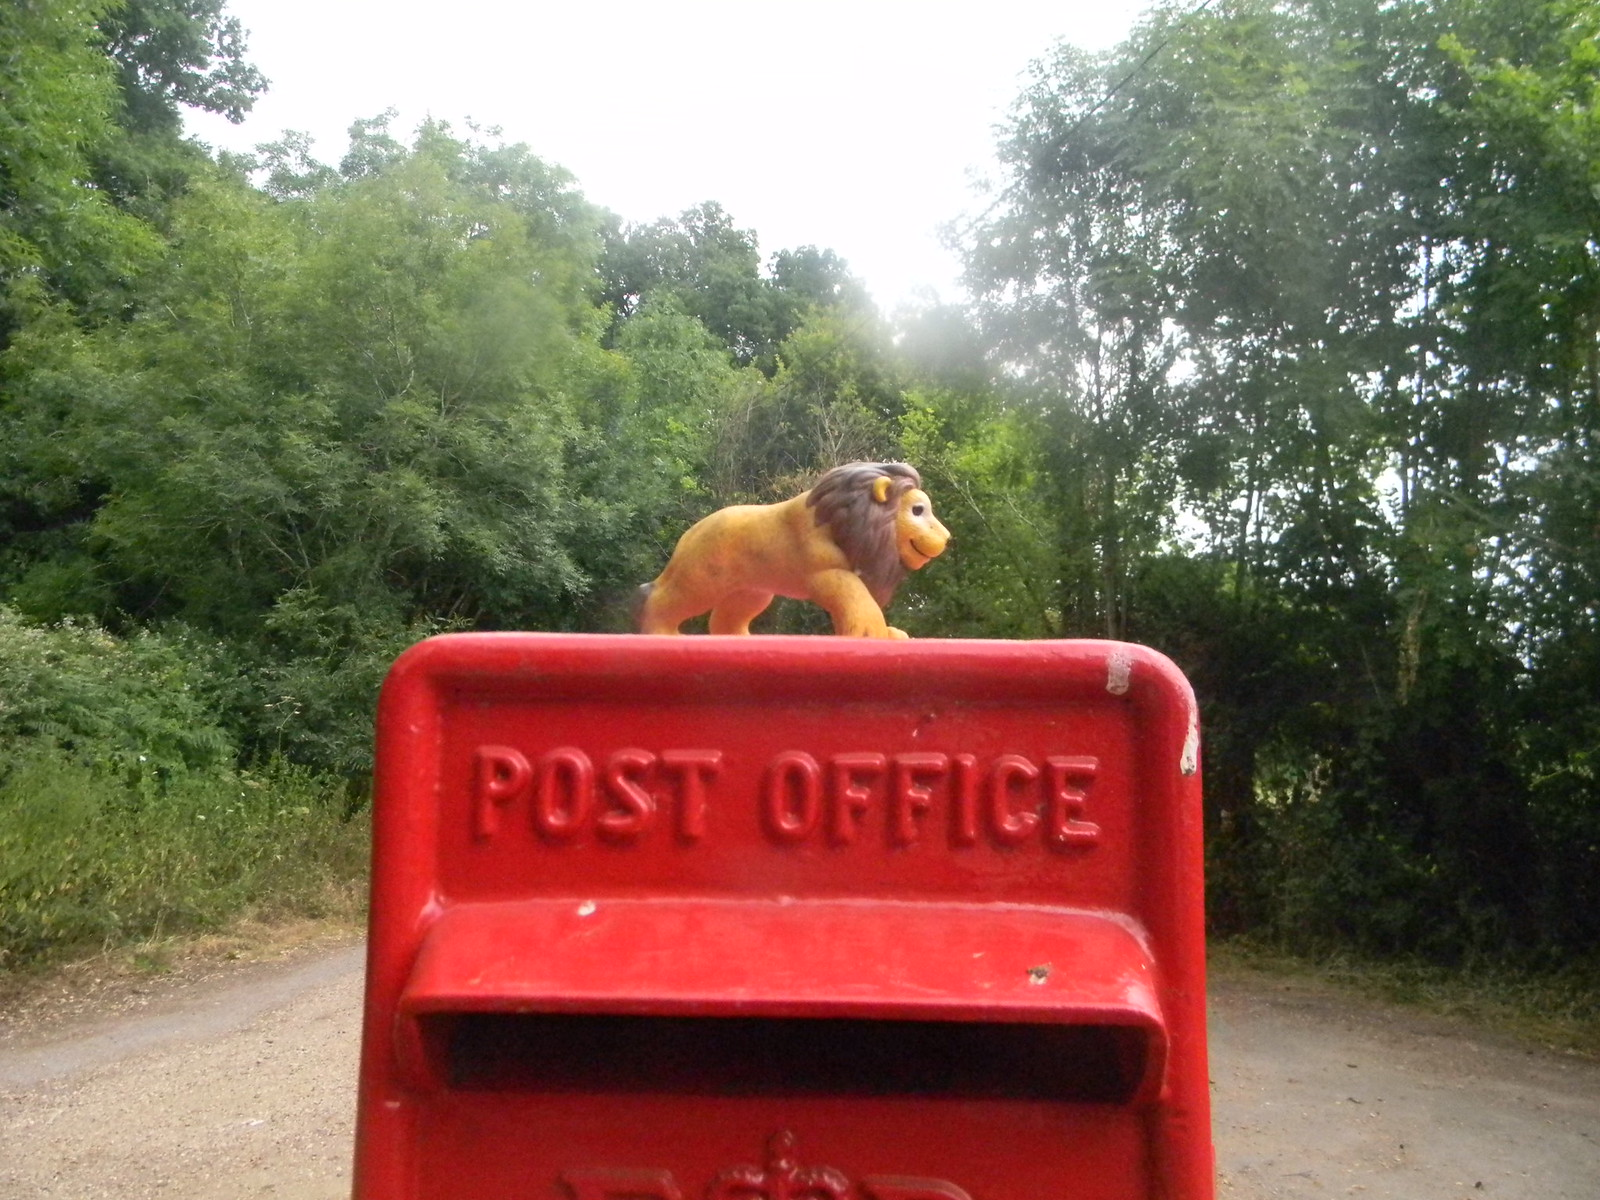 Wild beast Seen very close to the ampitheatre, probably an escapee. Mortimer to Aldermaston